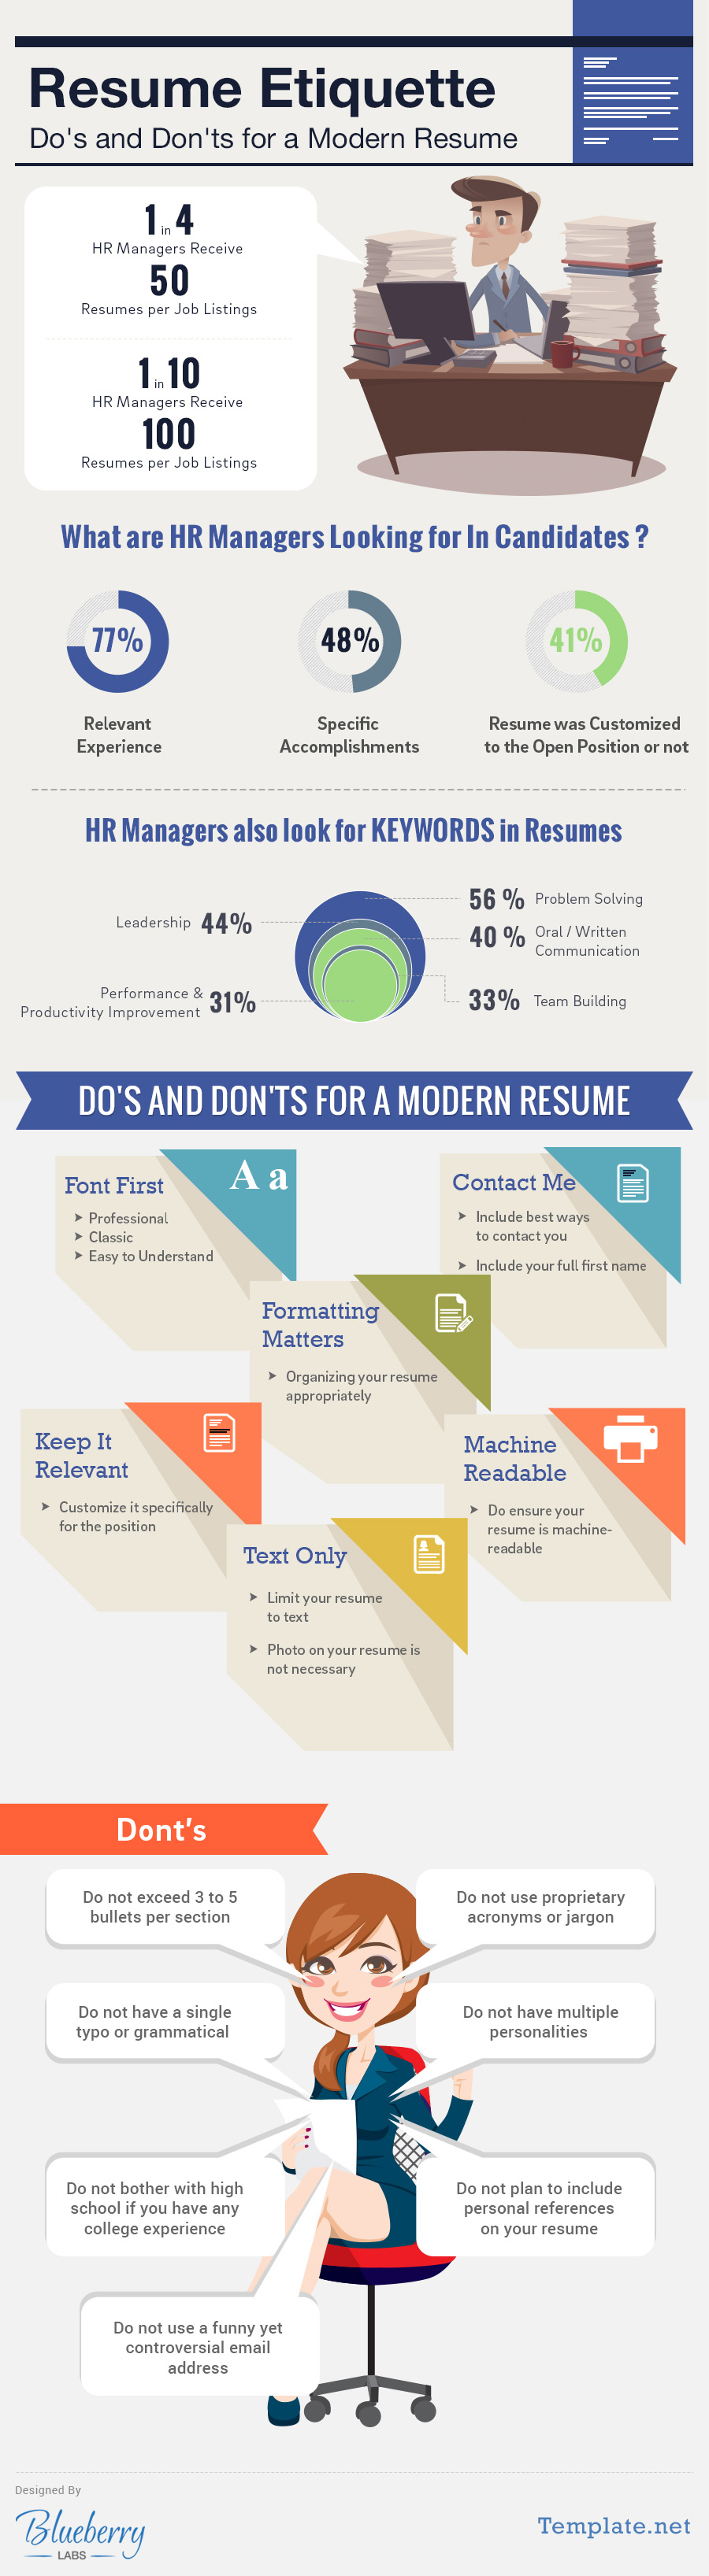 Do's & Don'ts for a Modern Resume Template